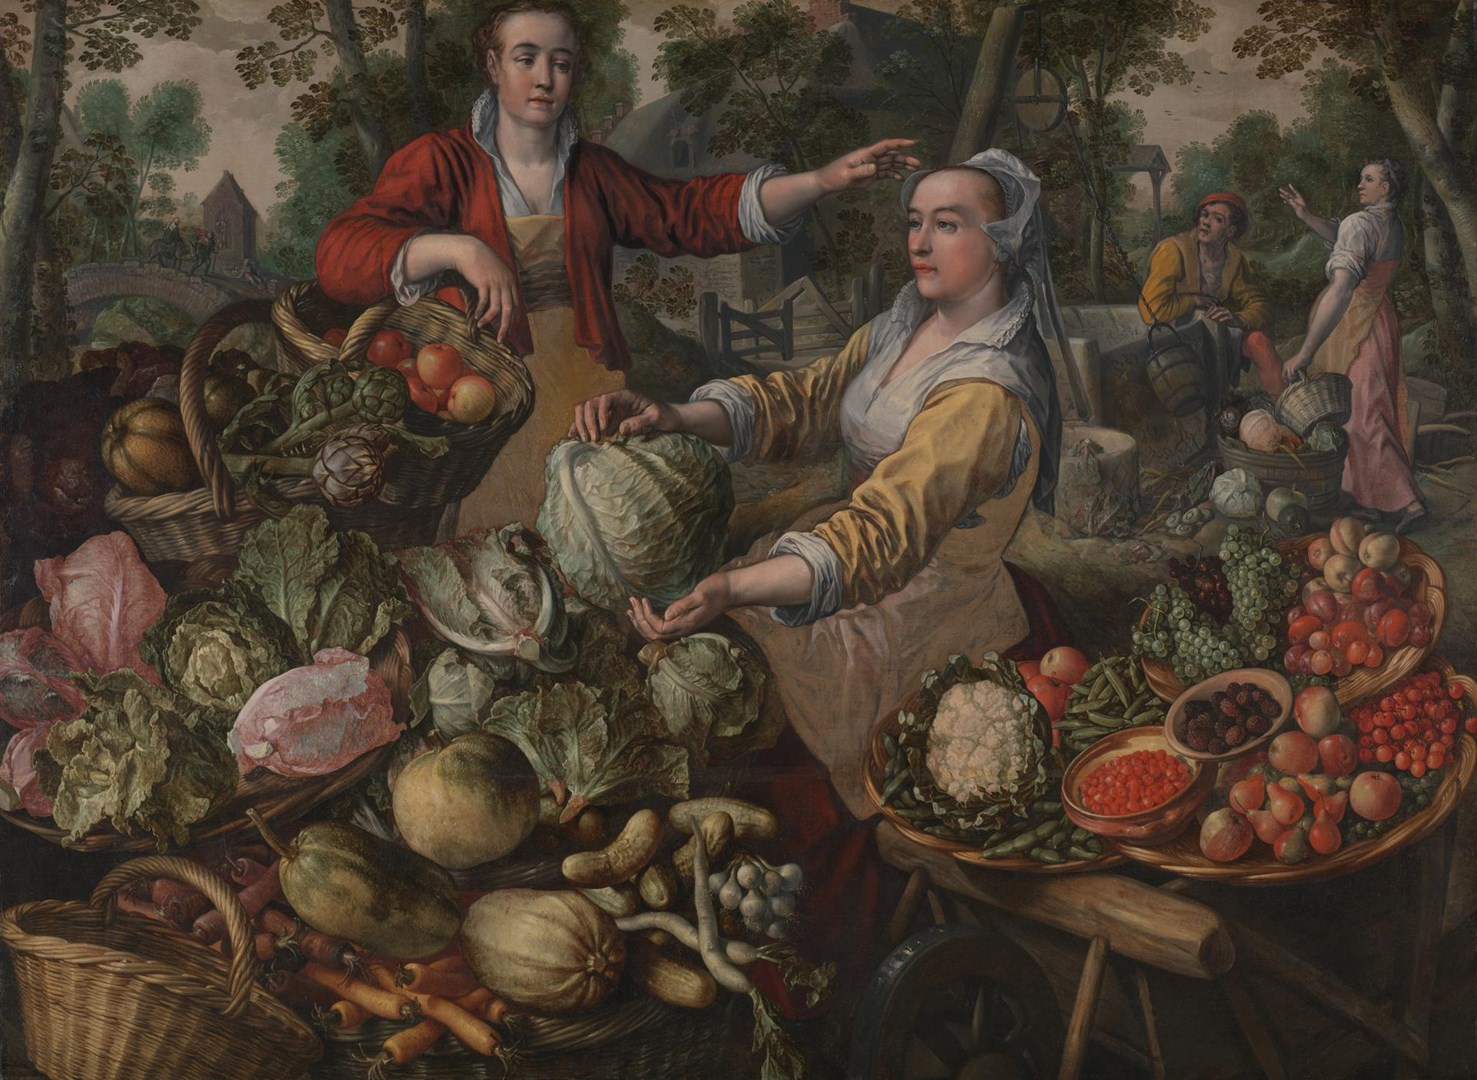 The Four Elements: Earth by Joachim Beuckelaer